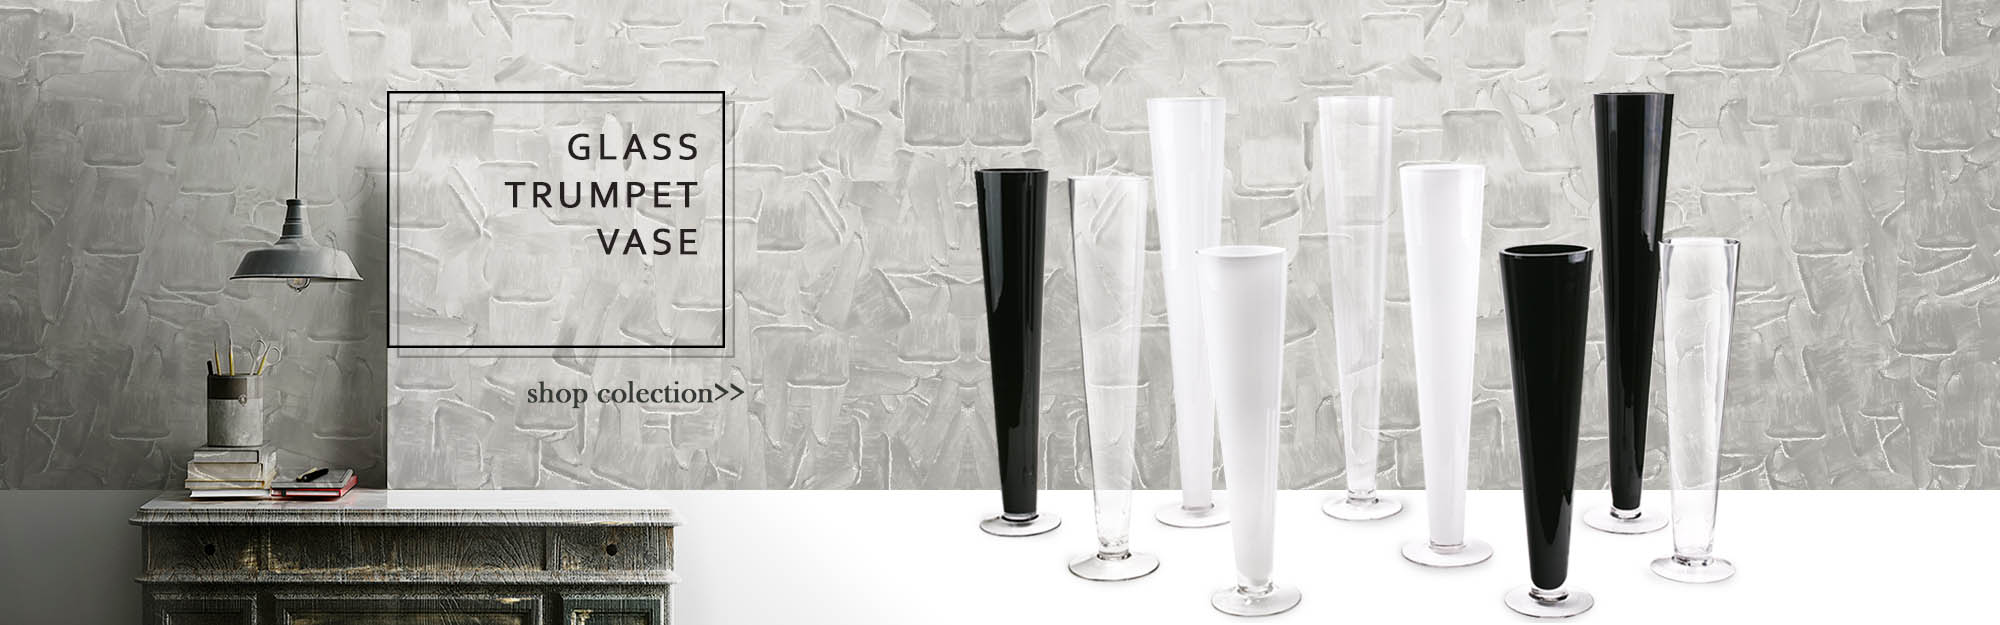 Large selections of Glass Trumpet Vases in different sizes and colors